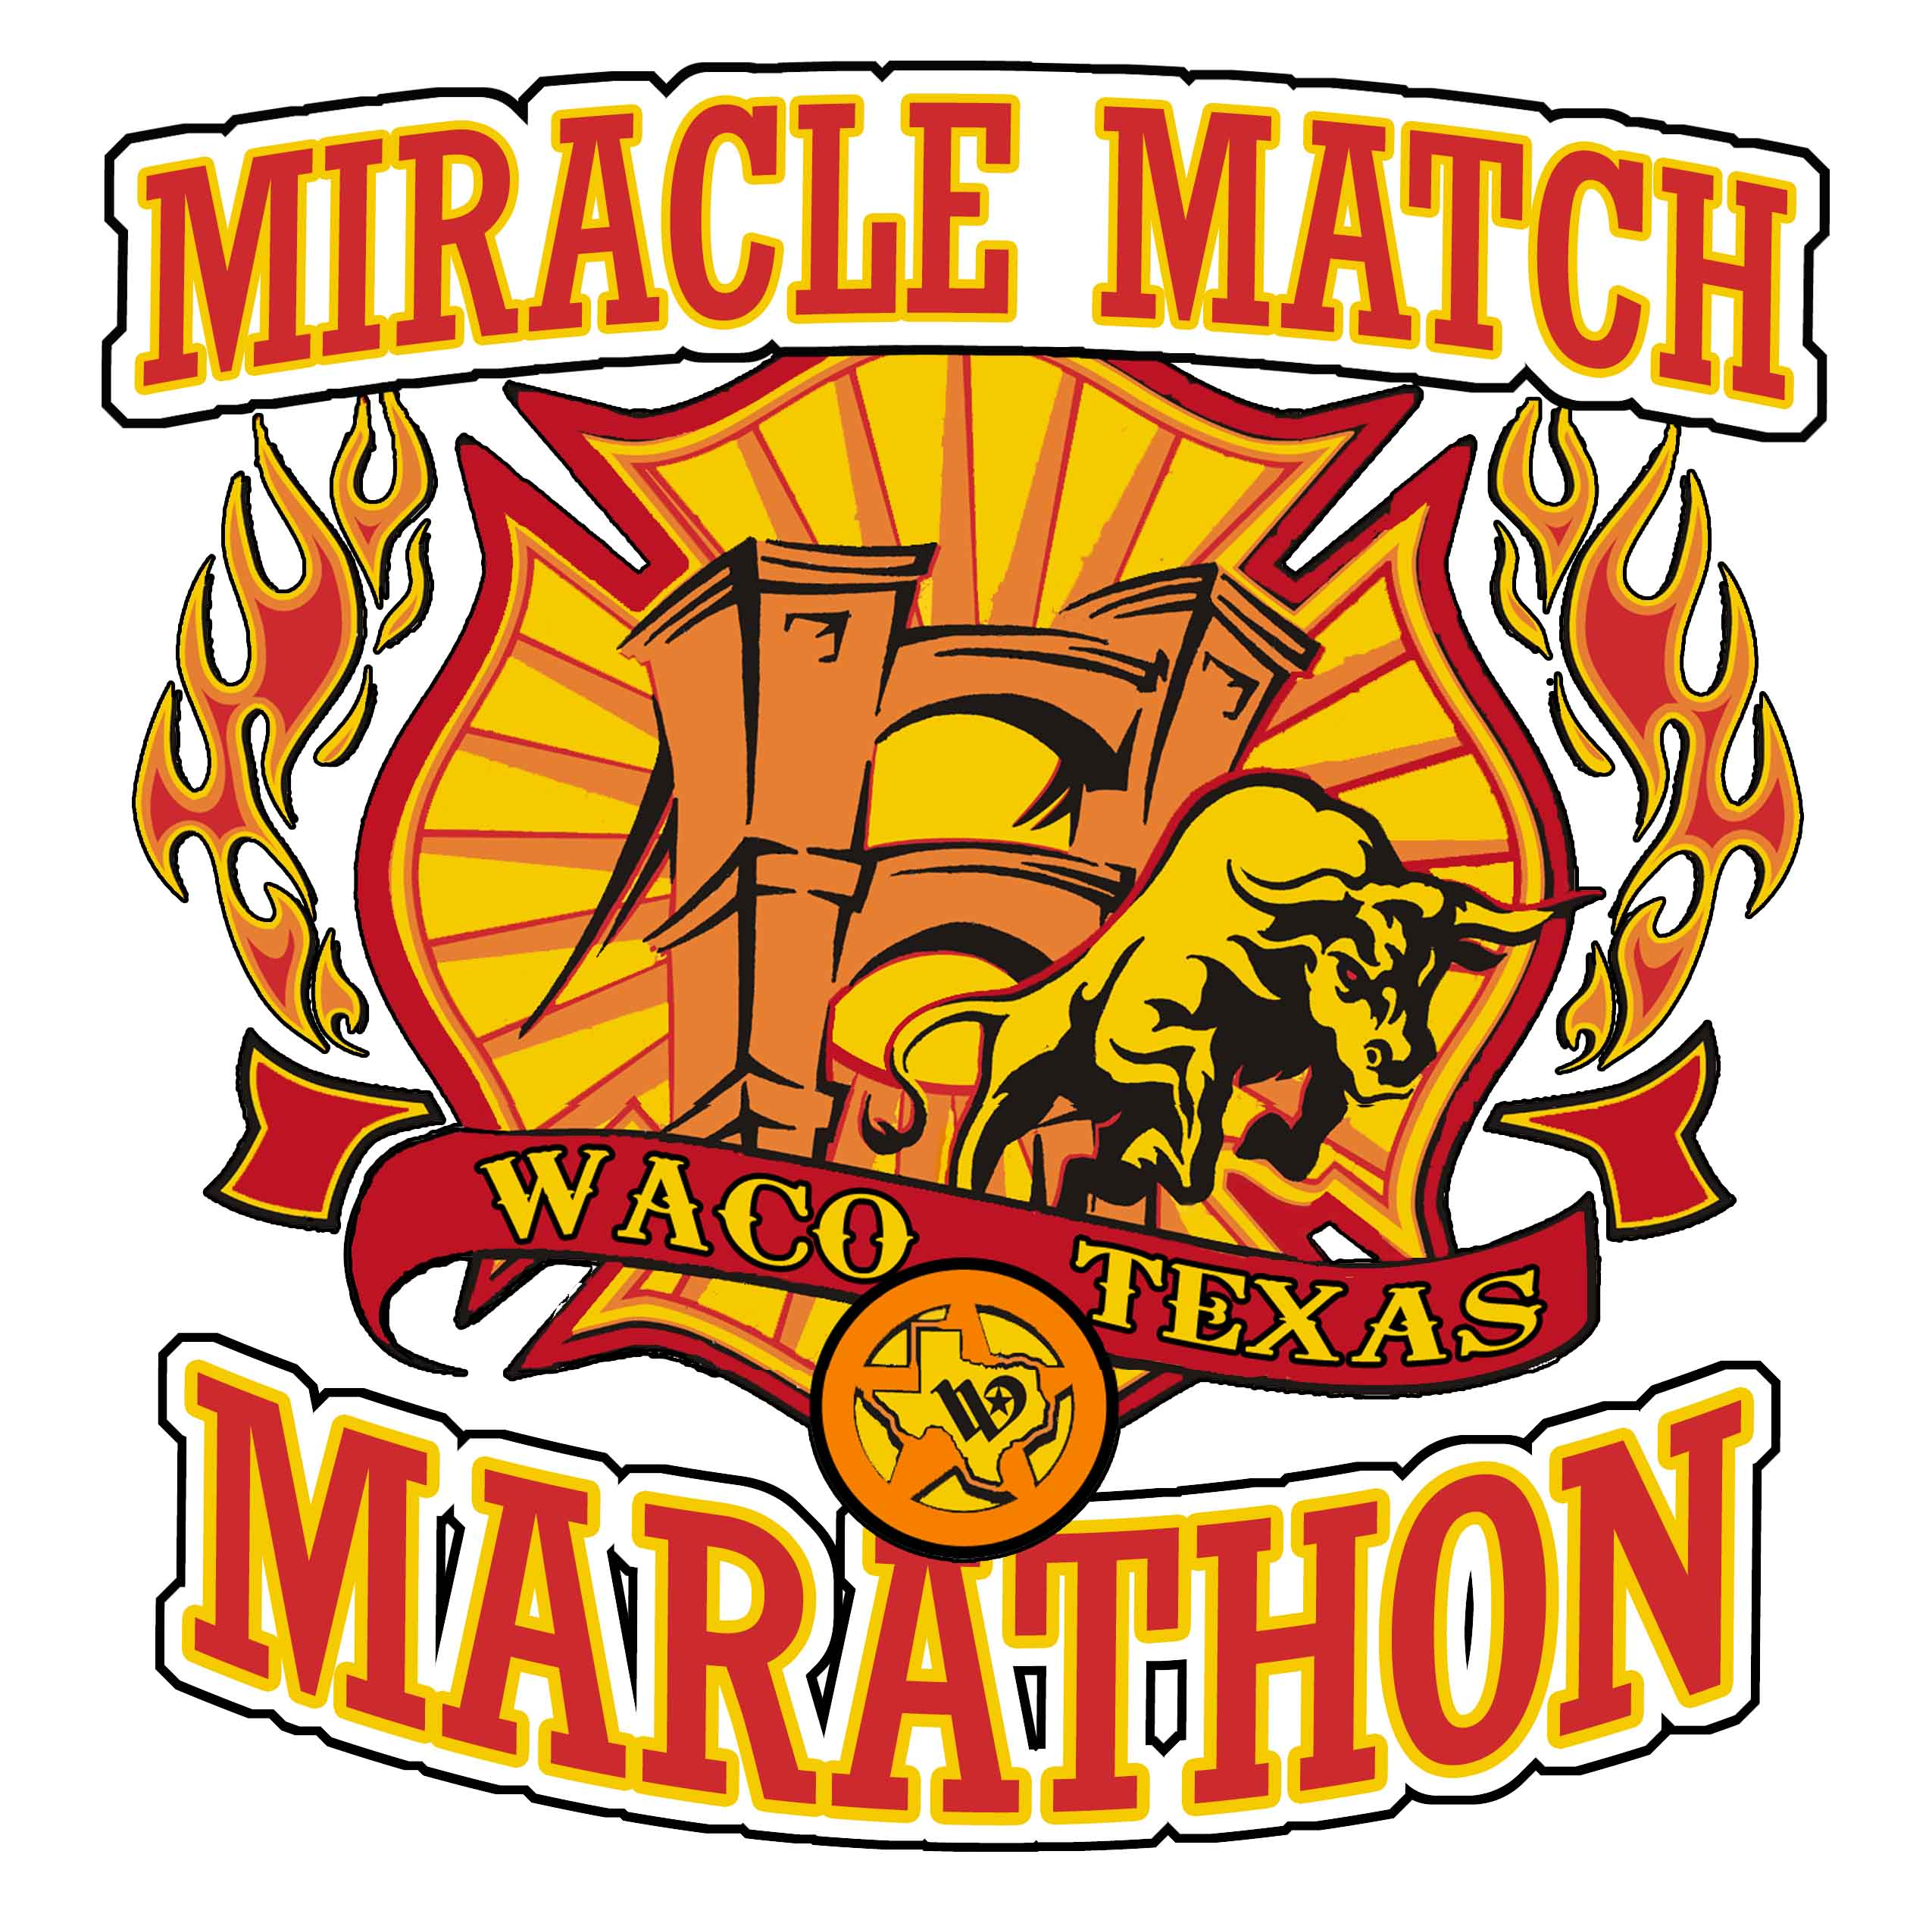 Miracle Match Marathon - Waco Texas